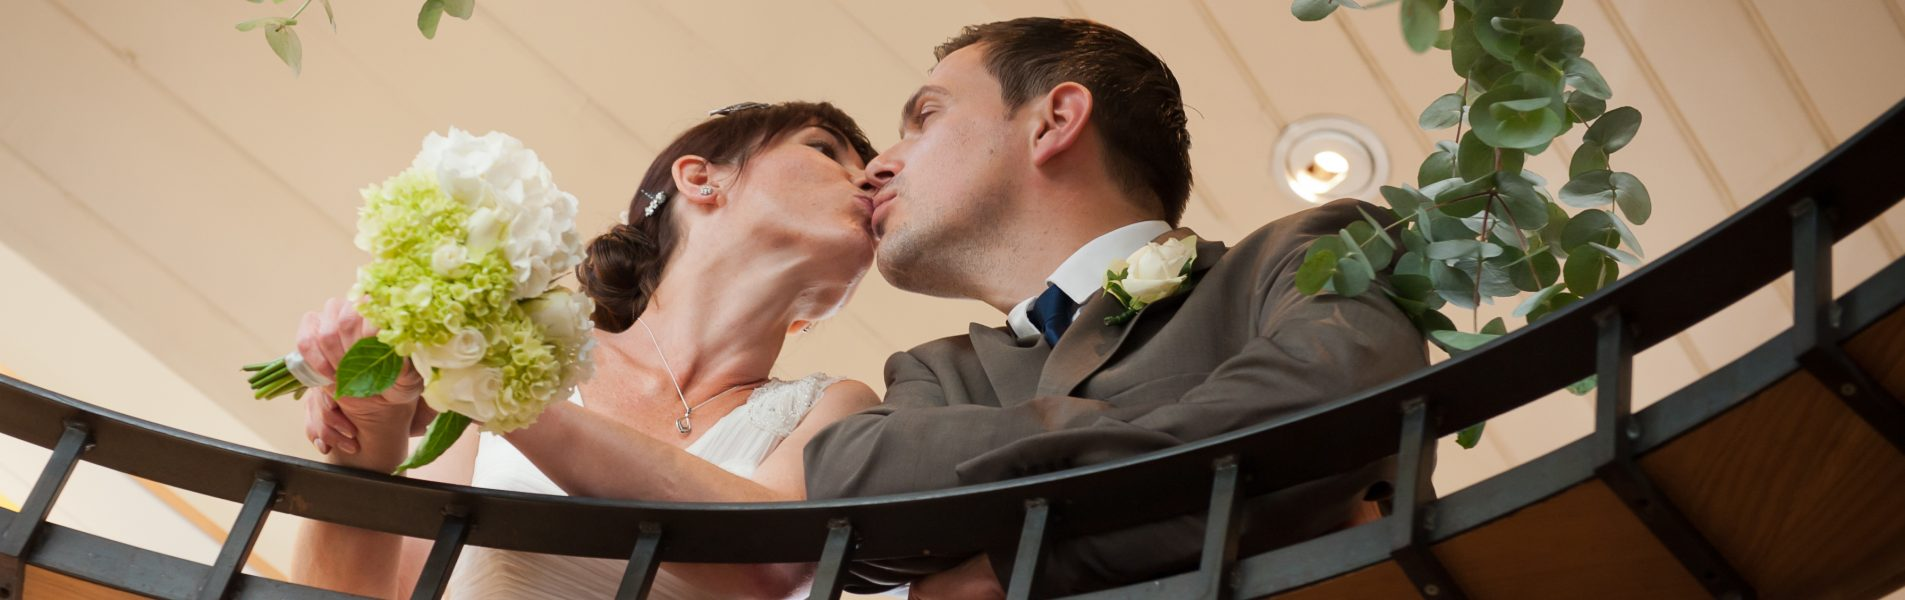 Kate and Martin - The Old Parsonage Wedding photography Oxfordshire